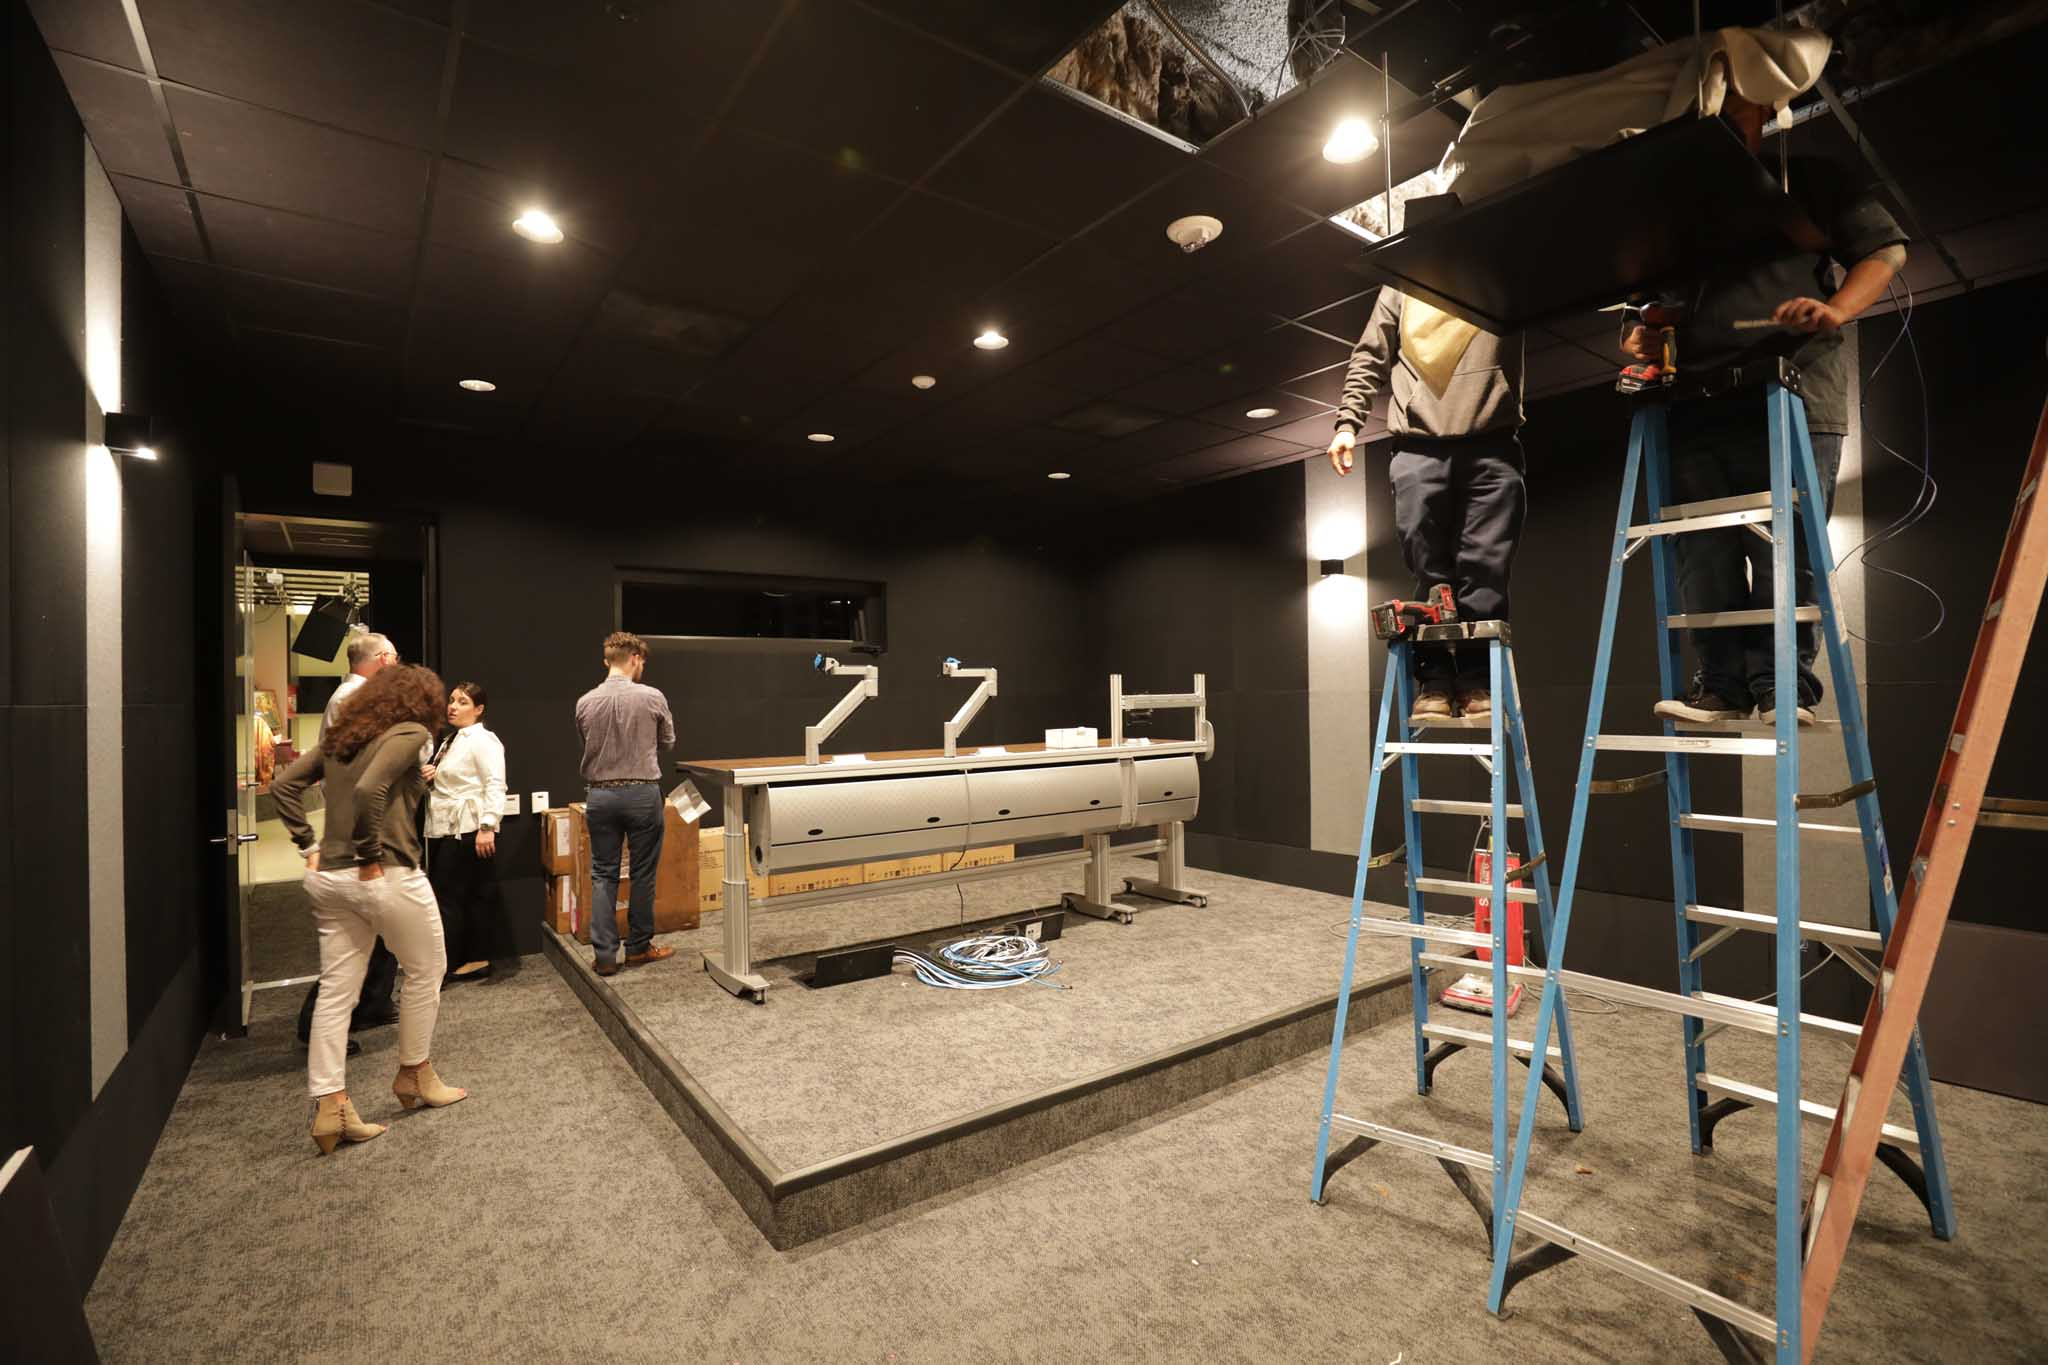 Screening room, under construction